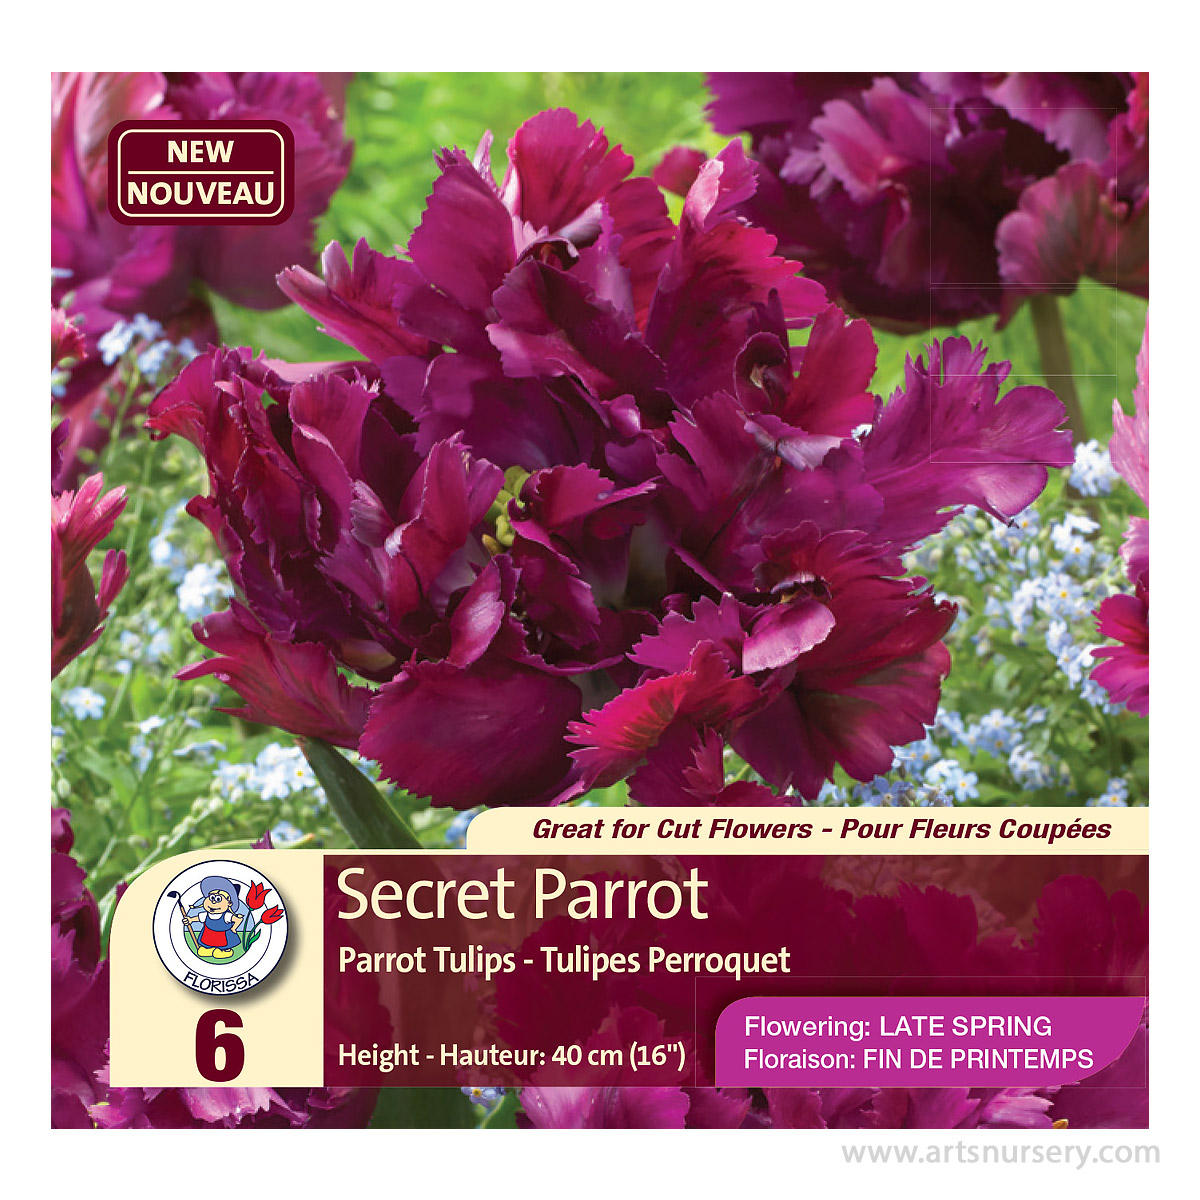 Tulip 'Secret Parrot' Bulbs